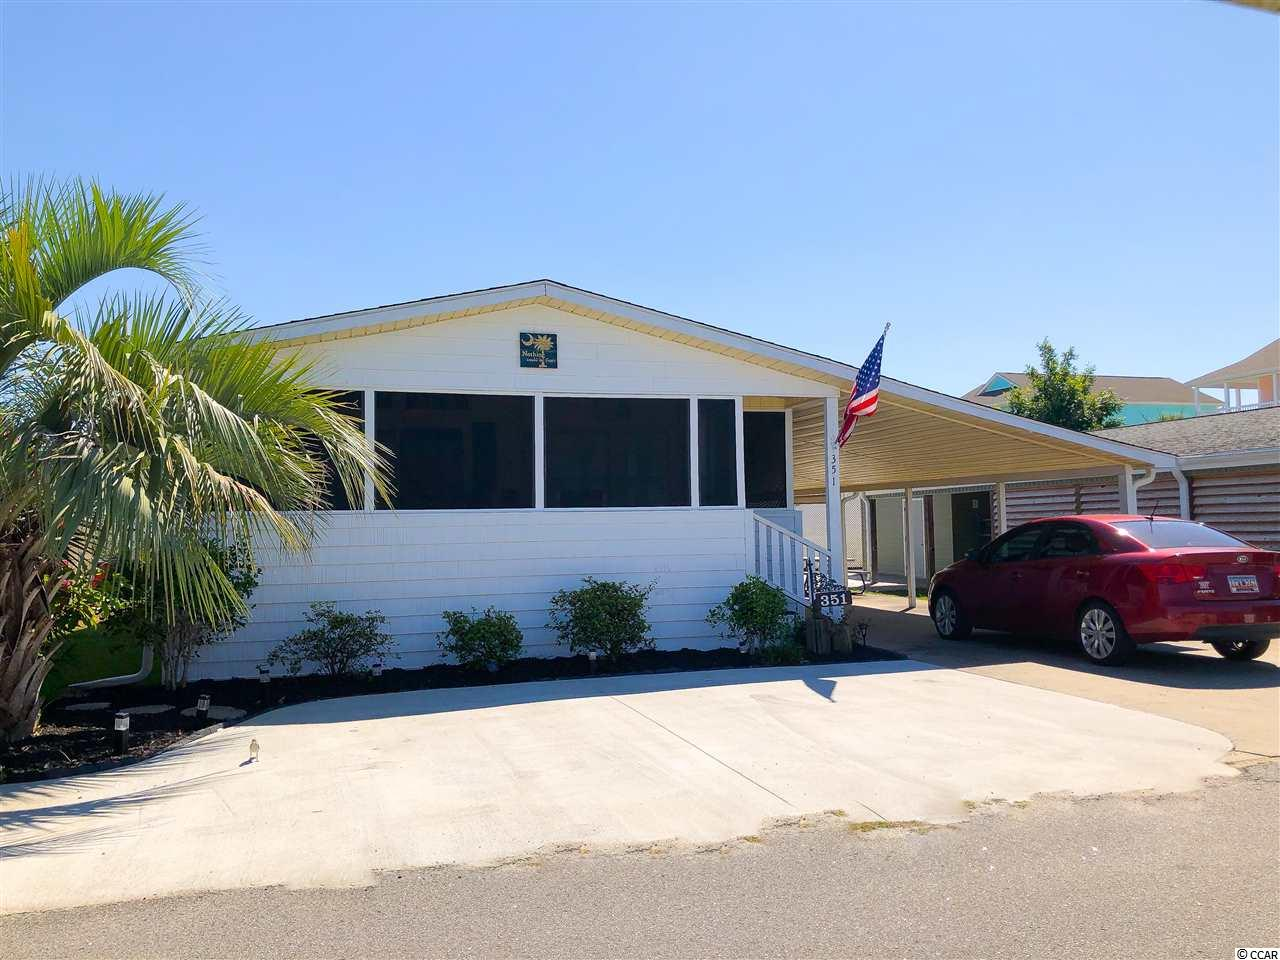 Absolutely immaculate raised beach home in the much desired Oceanside Village. Golf cart ride to a gated beach parking lot next door to the oceanfront Conch Cafe! Large screened porch, new furniture, new washer and dryer, new microwave, new storm window inserts, new insulation in crawl space. New EcoBee thermostat that can be controlled by your phone.   Oceanside Village has two outdoor pools, a Splash Pad for the kids, hot tub, indoor pool, library, fitness center, ponds, dog park, lots of nature and green areas. The Amenities Center is the heart of the village, with a commercial kitchen, stage, dance floor for dinners, dances, and game nights. Also, you can enjoy tennis, baseball, bocce ball, soccer, a playground, and more. Enjoy the lifestyle of living in an oceanside neighborhood.